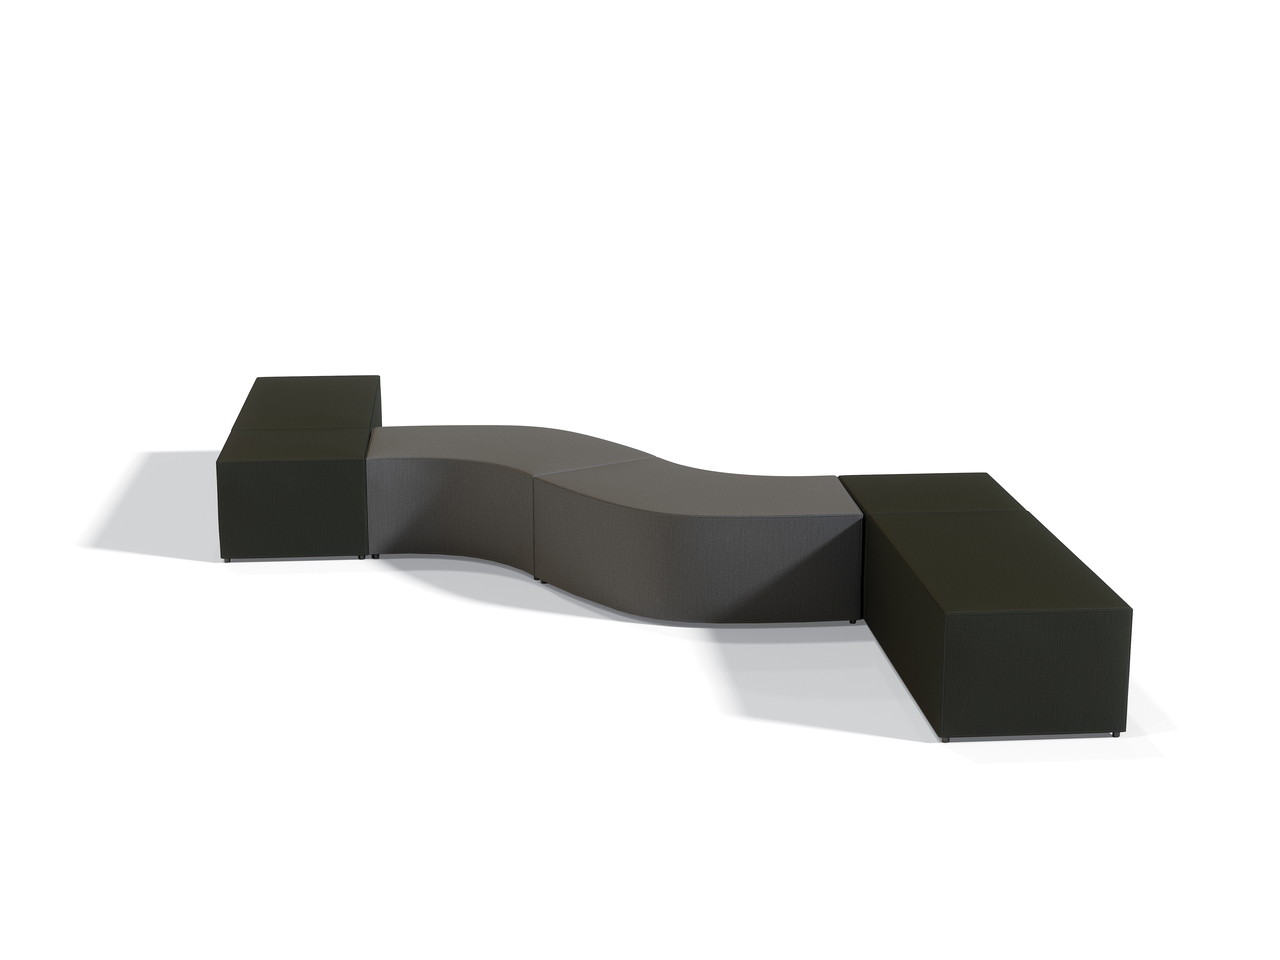 modular ottoman layout by offices to go